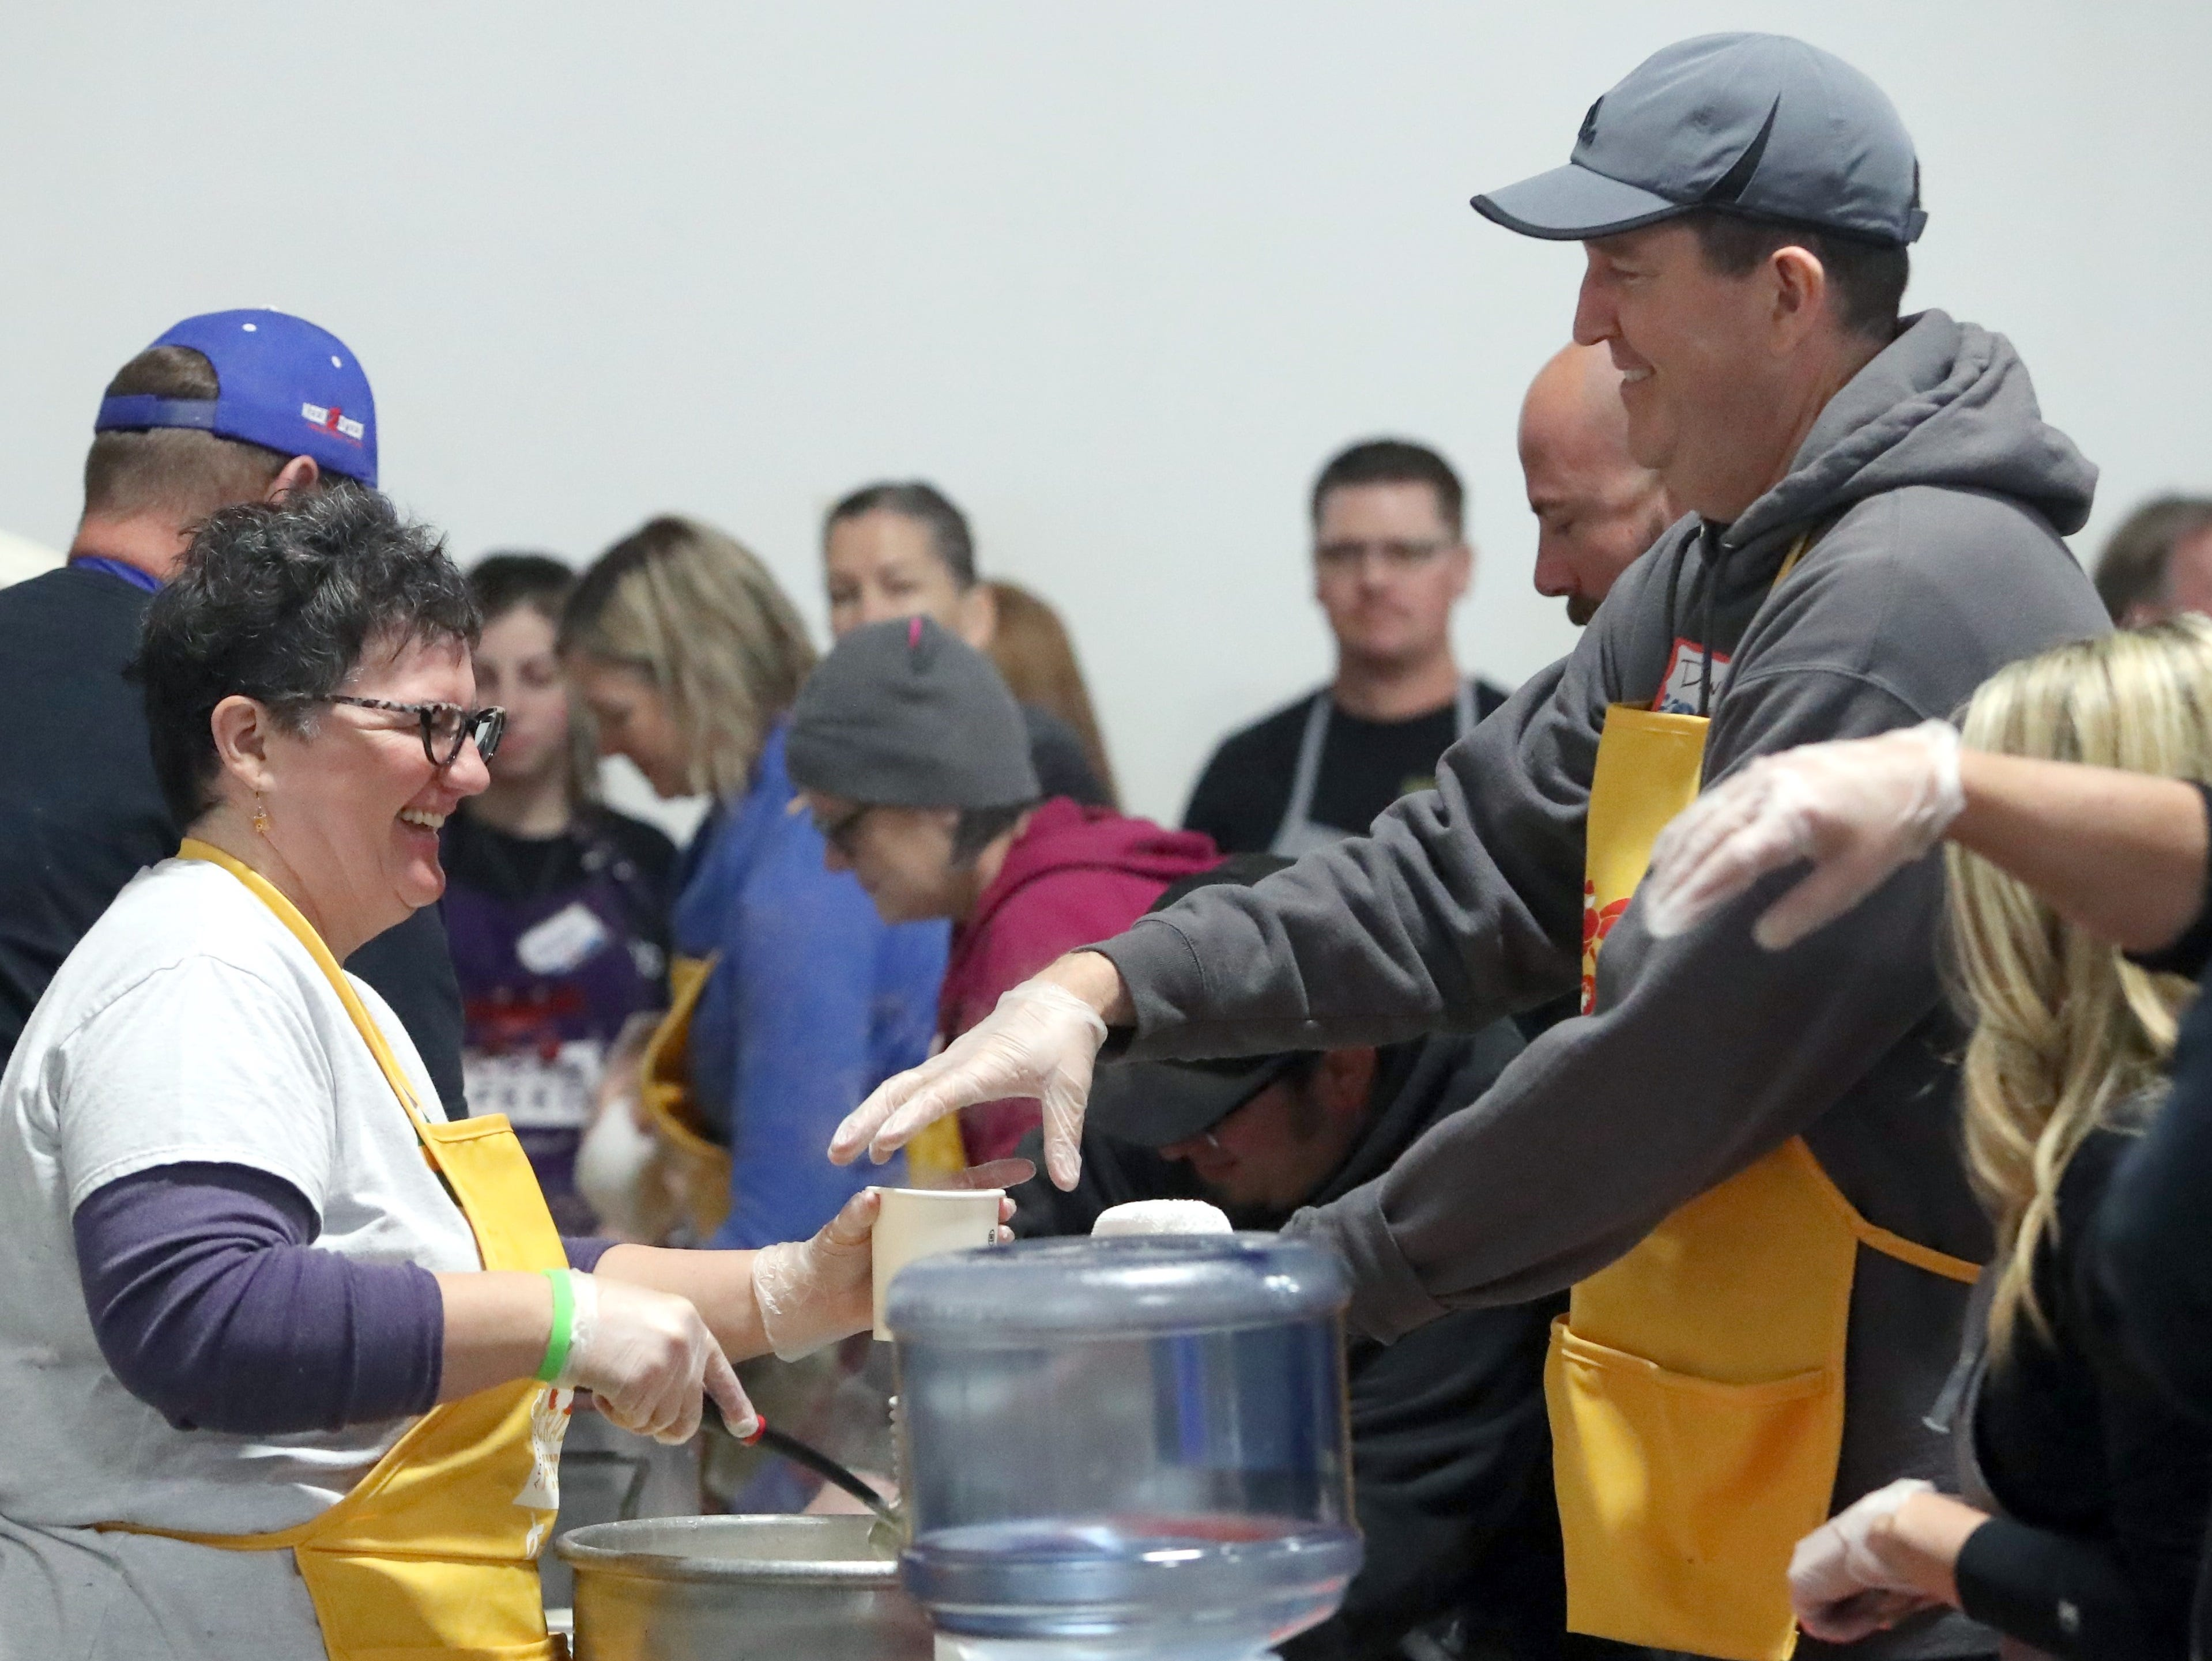 Helpers load up on the Anderson Rotary Club's clam chowder to serve to some 1,200 people at One SAFE Place's crab feed Saturday, Feb. 2, 2019, at the Shasta District Fair grounds in Anderson.